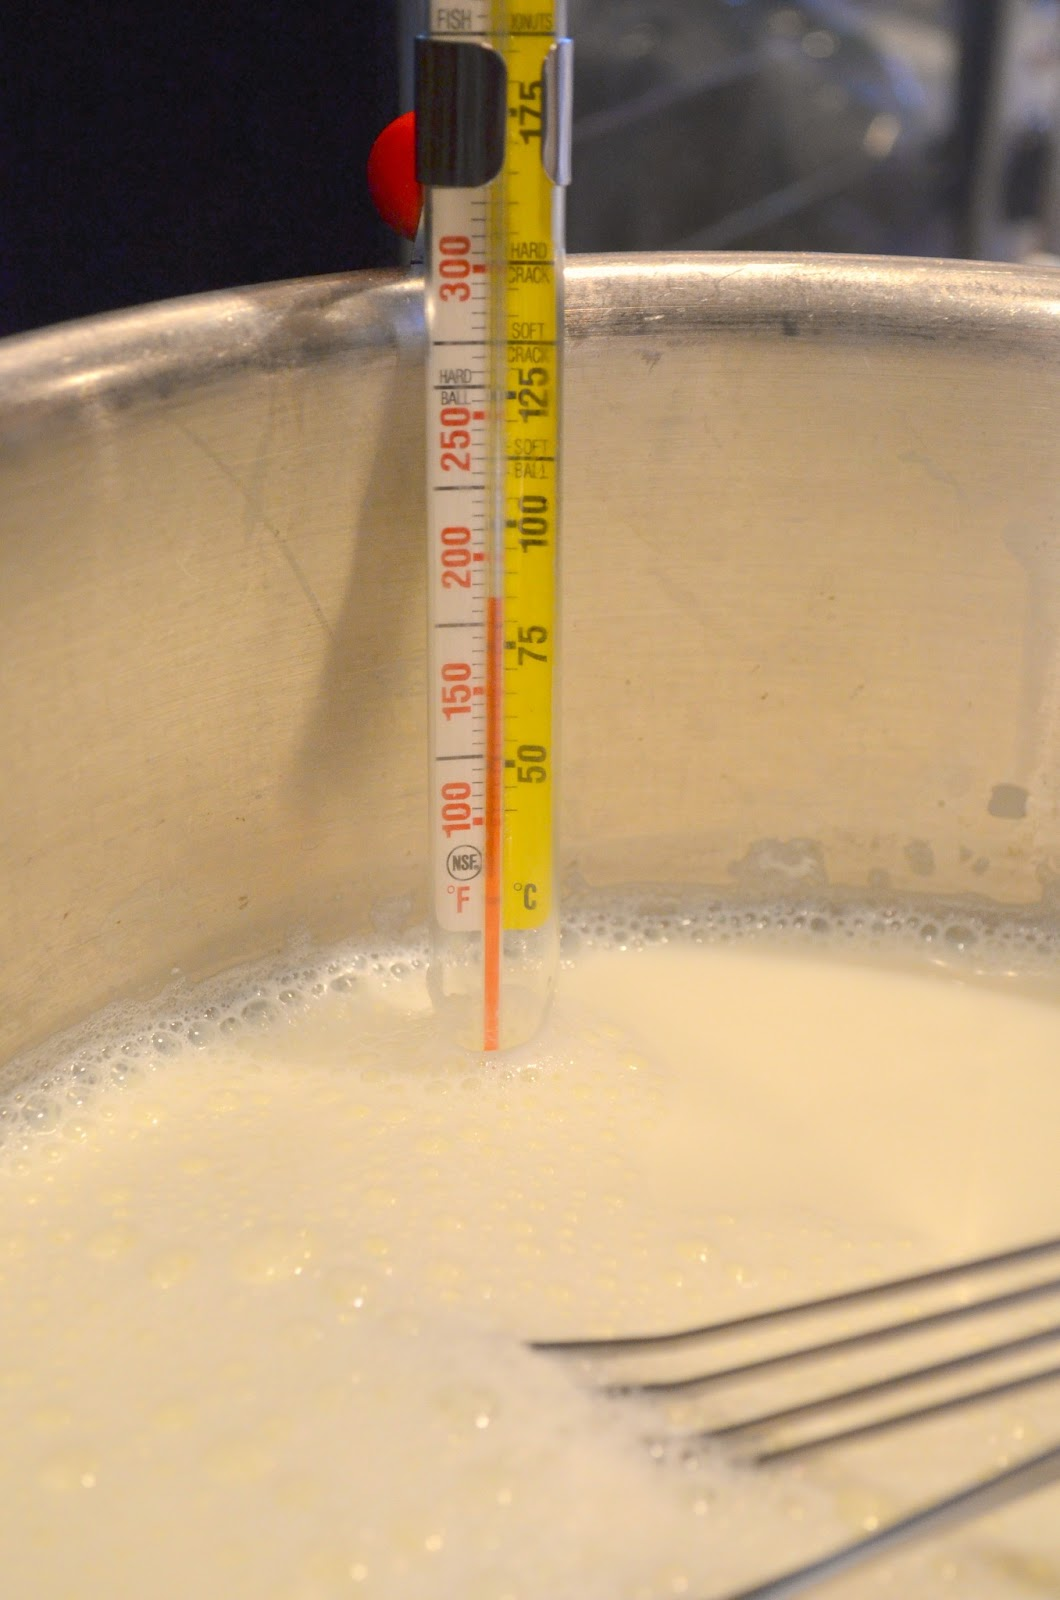 Heat milk to 180 degrees to make Homemade Yogurt from Serena Bakes Simply From Scratch.